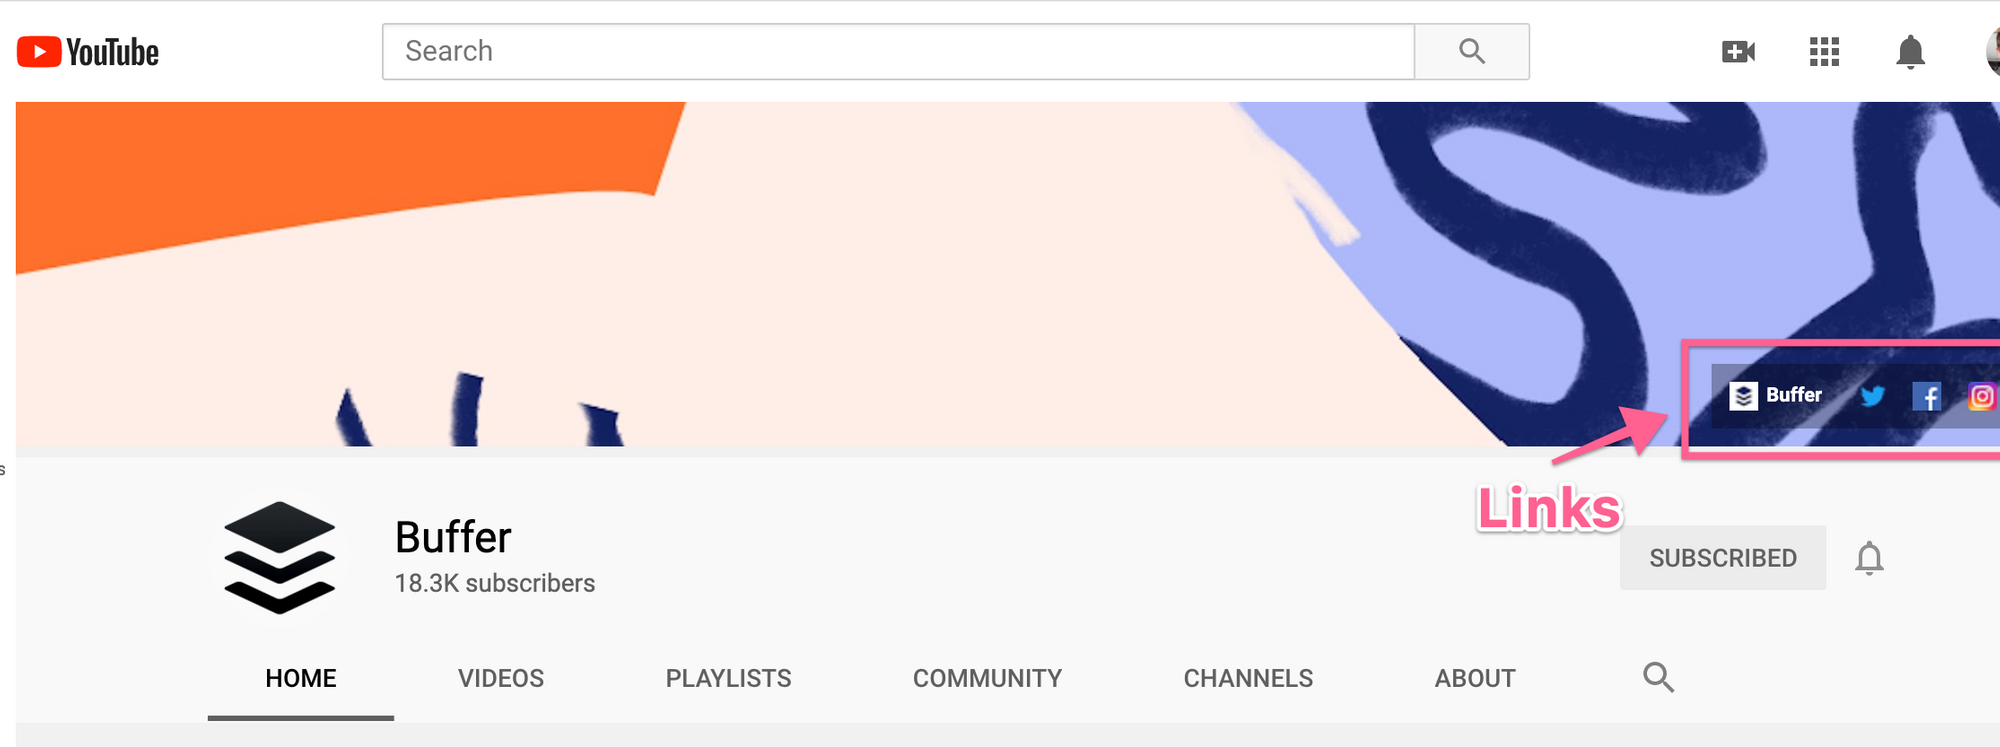 Where links appear on YouTube channel art